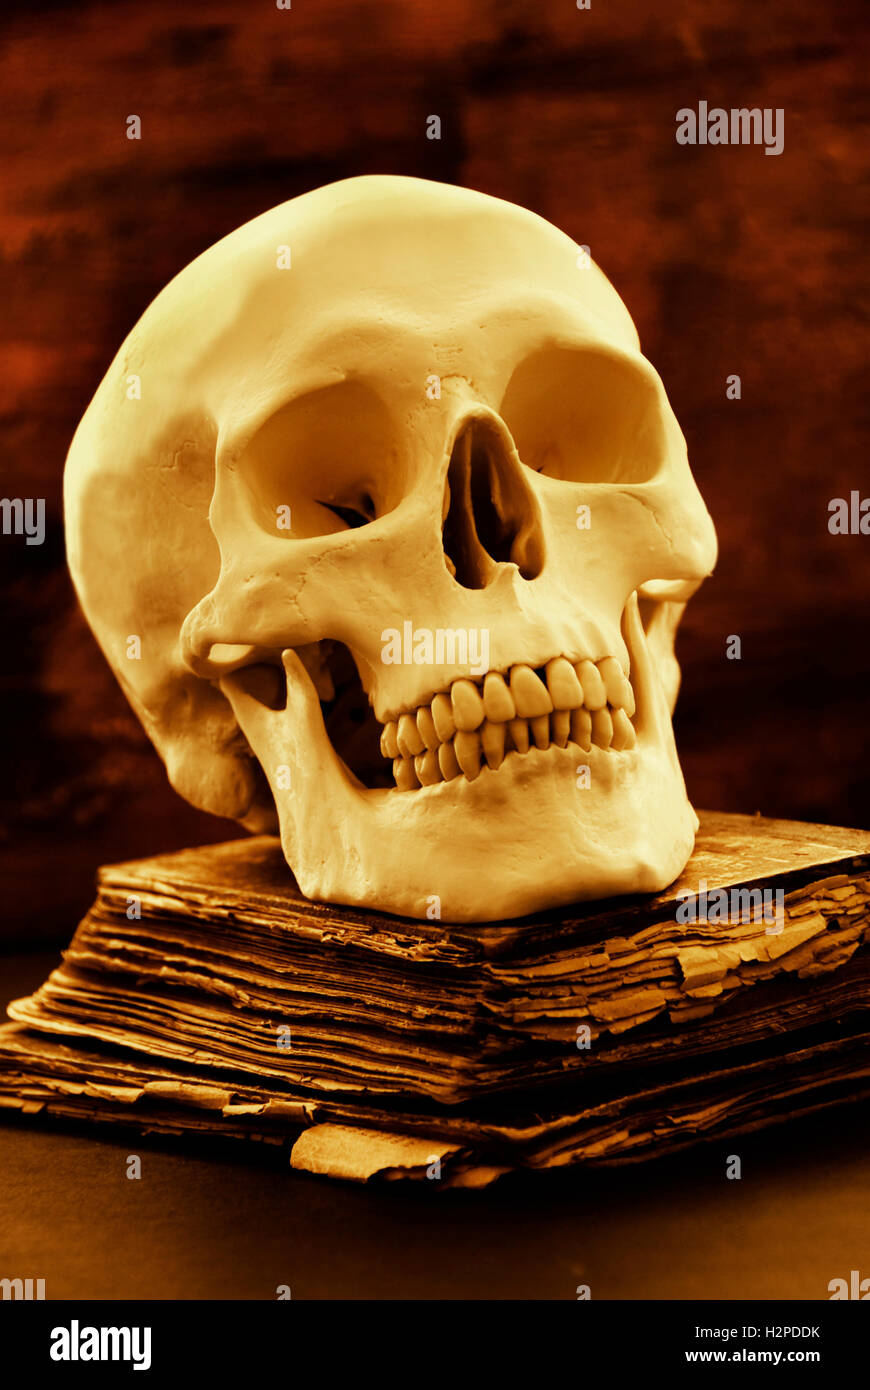 human skull and old book, horror and Halloween concept - Stock Image